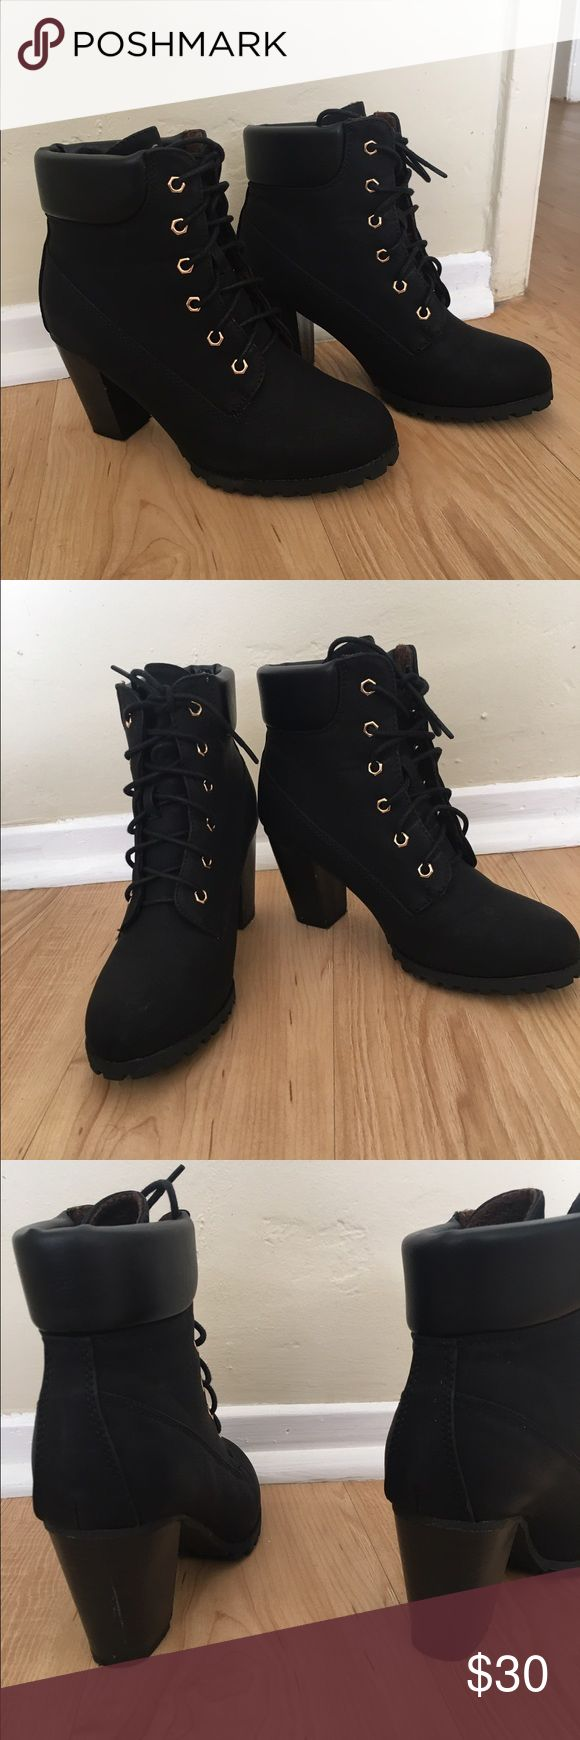 Bella Marie size 7 Ankle booties, all black, used-flaws shown in pictures, all black Shoes Ankle Boots & Booties